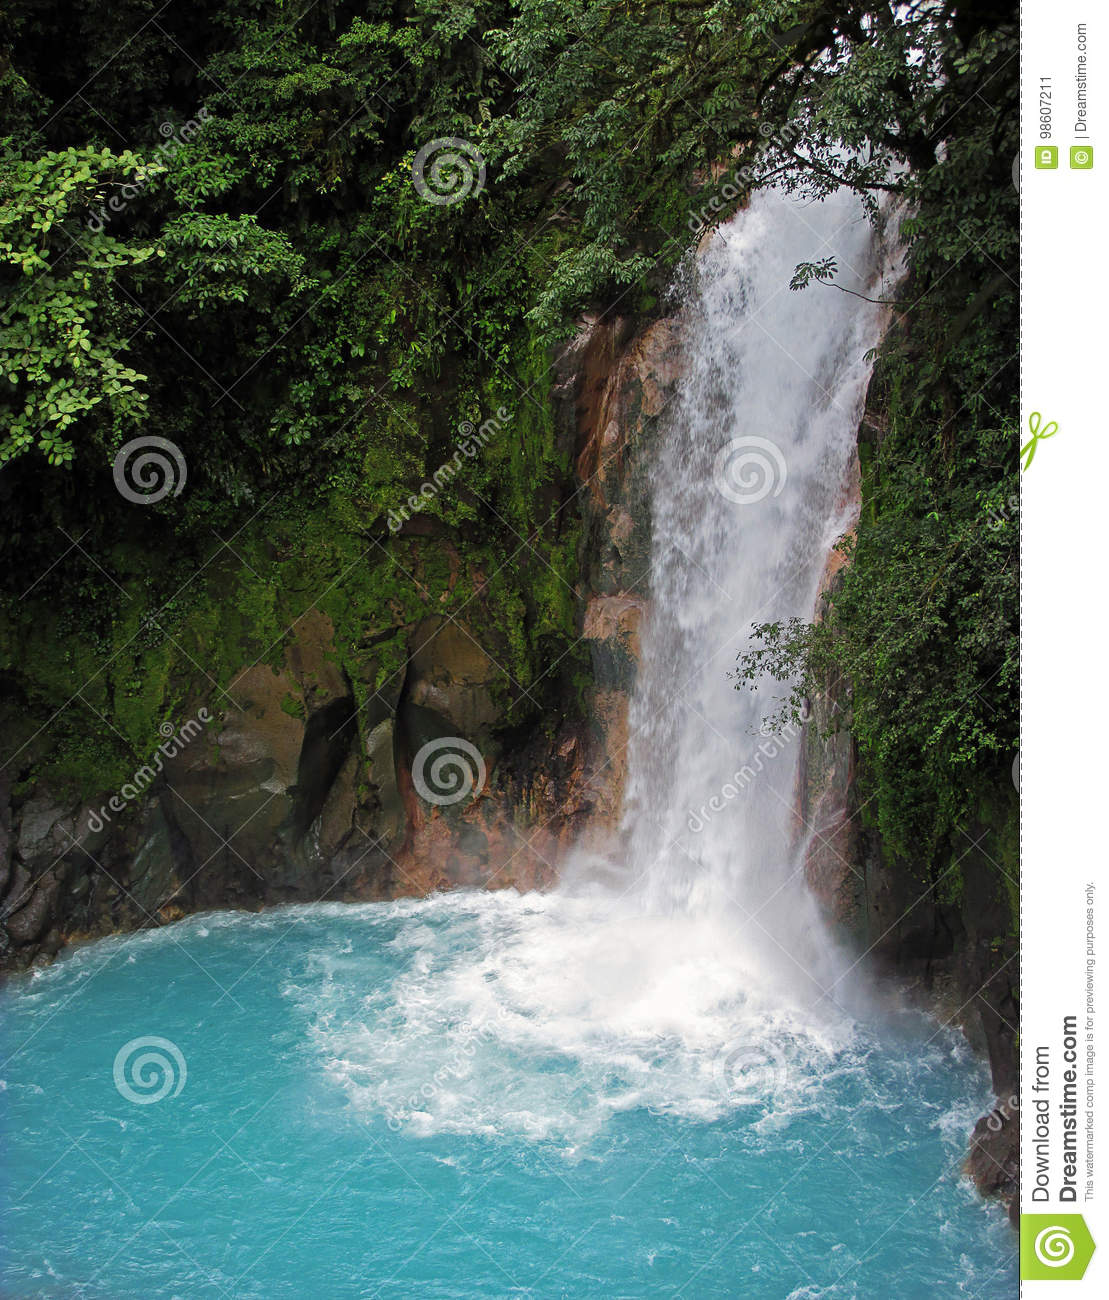 Rio Celeste Waterfall in Tenorio Volcano National Park in Costa Rica